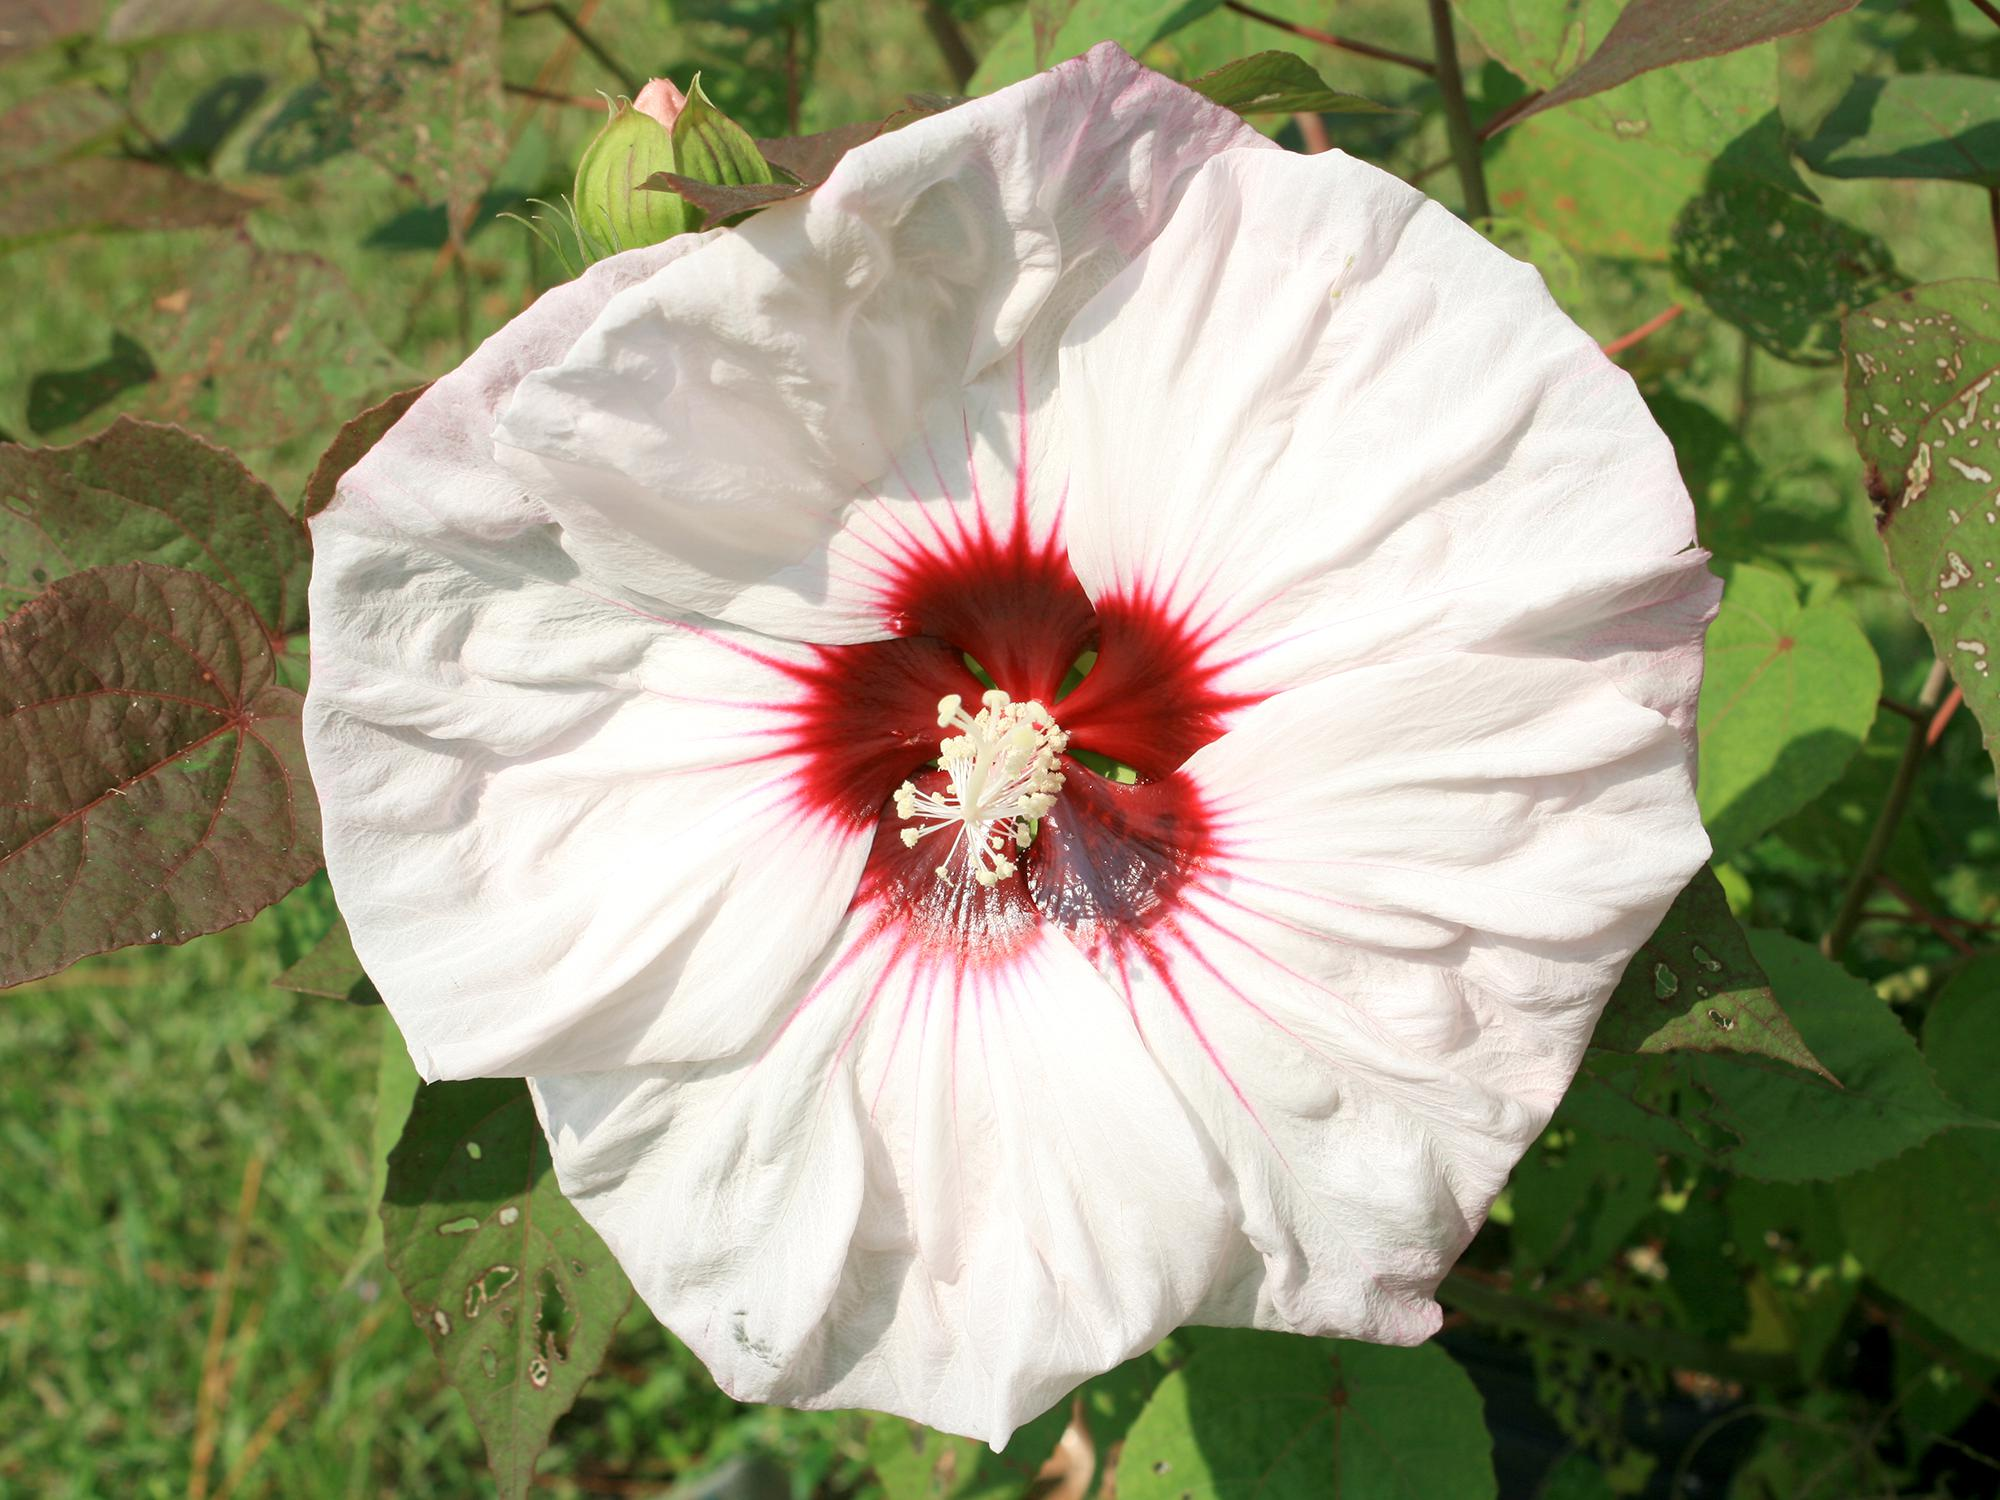 Mississippi gardens excel with hibiscus mississippi state hardy hibiscuses can withstand mississippi winters and have massive flowers many bright and beautiful colors izmirmasajfo